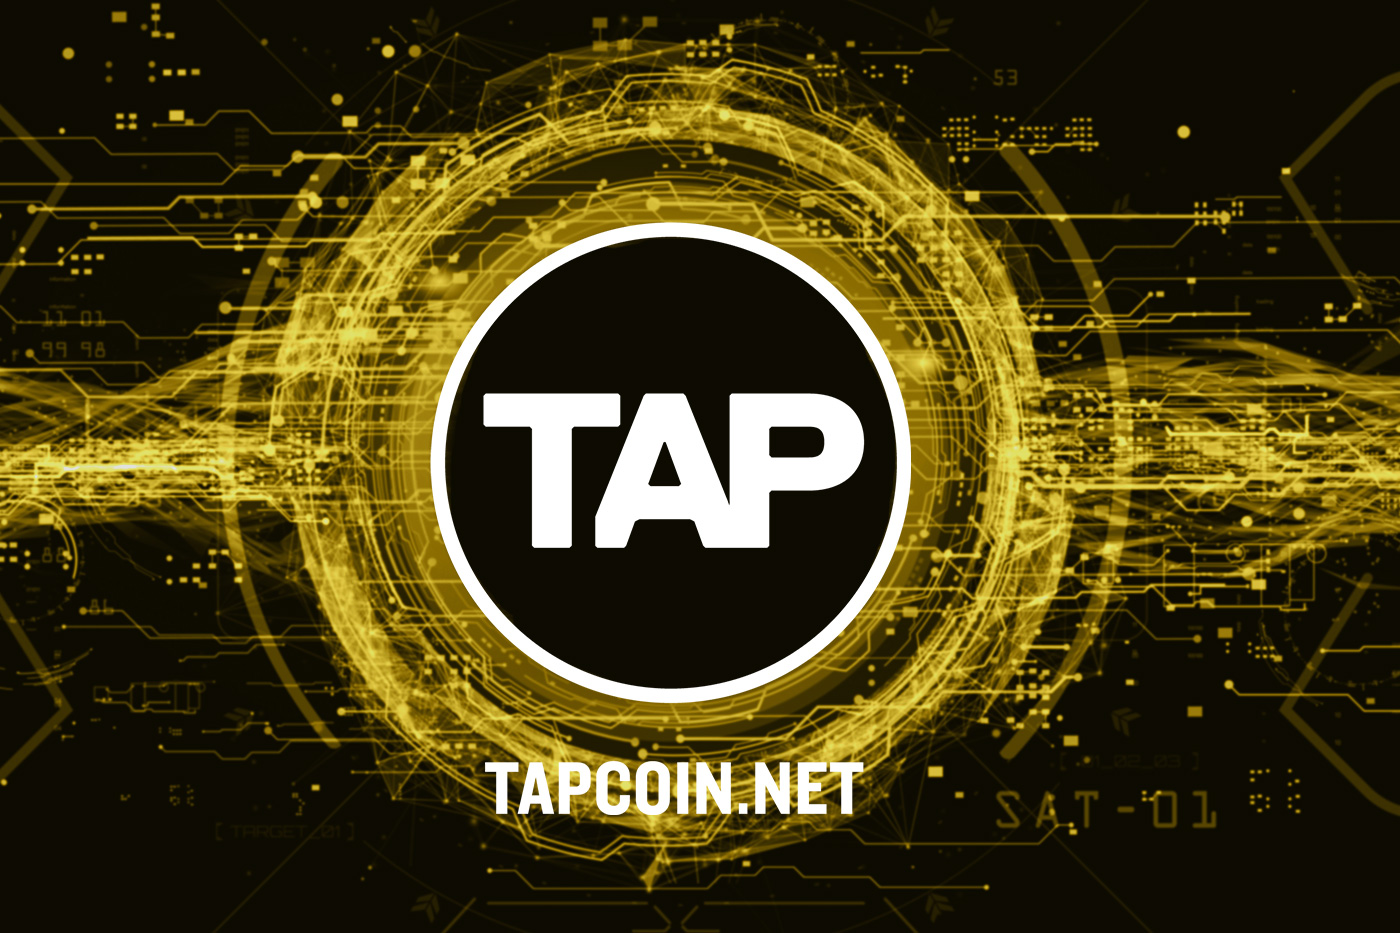 Tap Coin